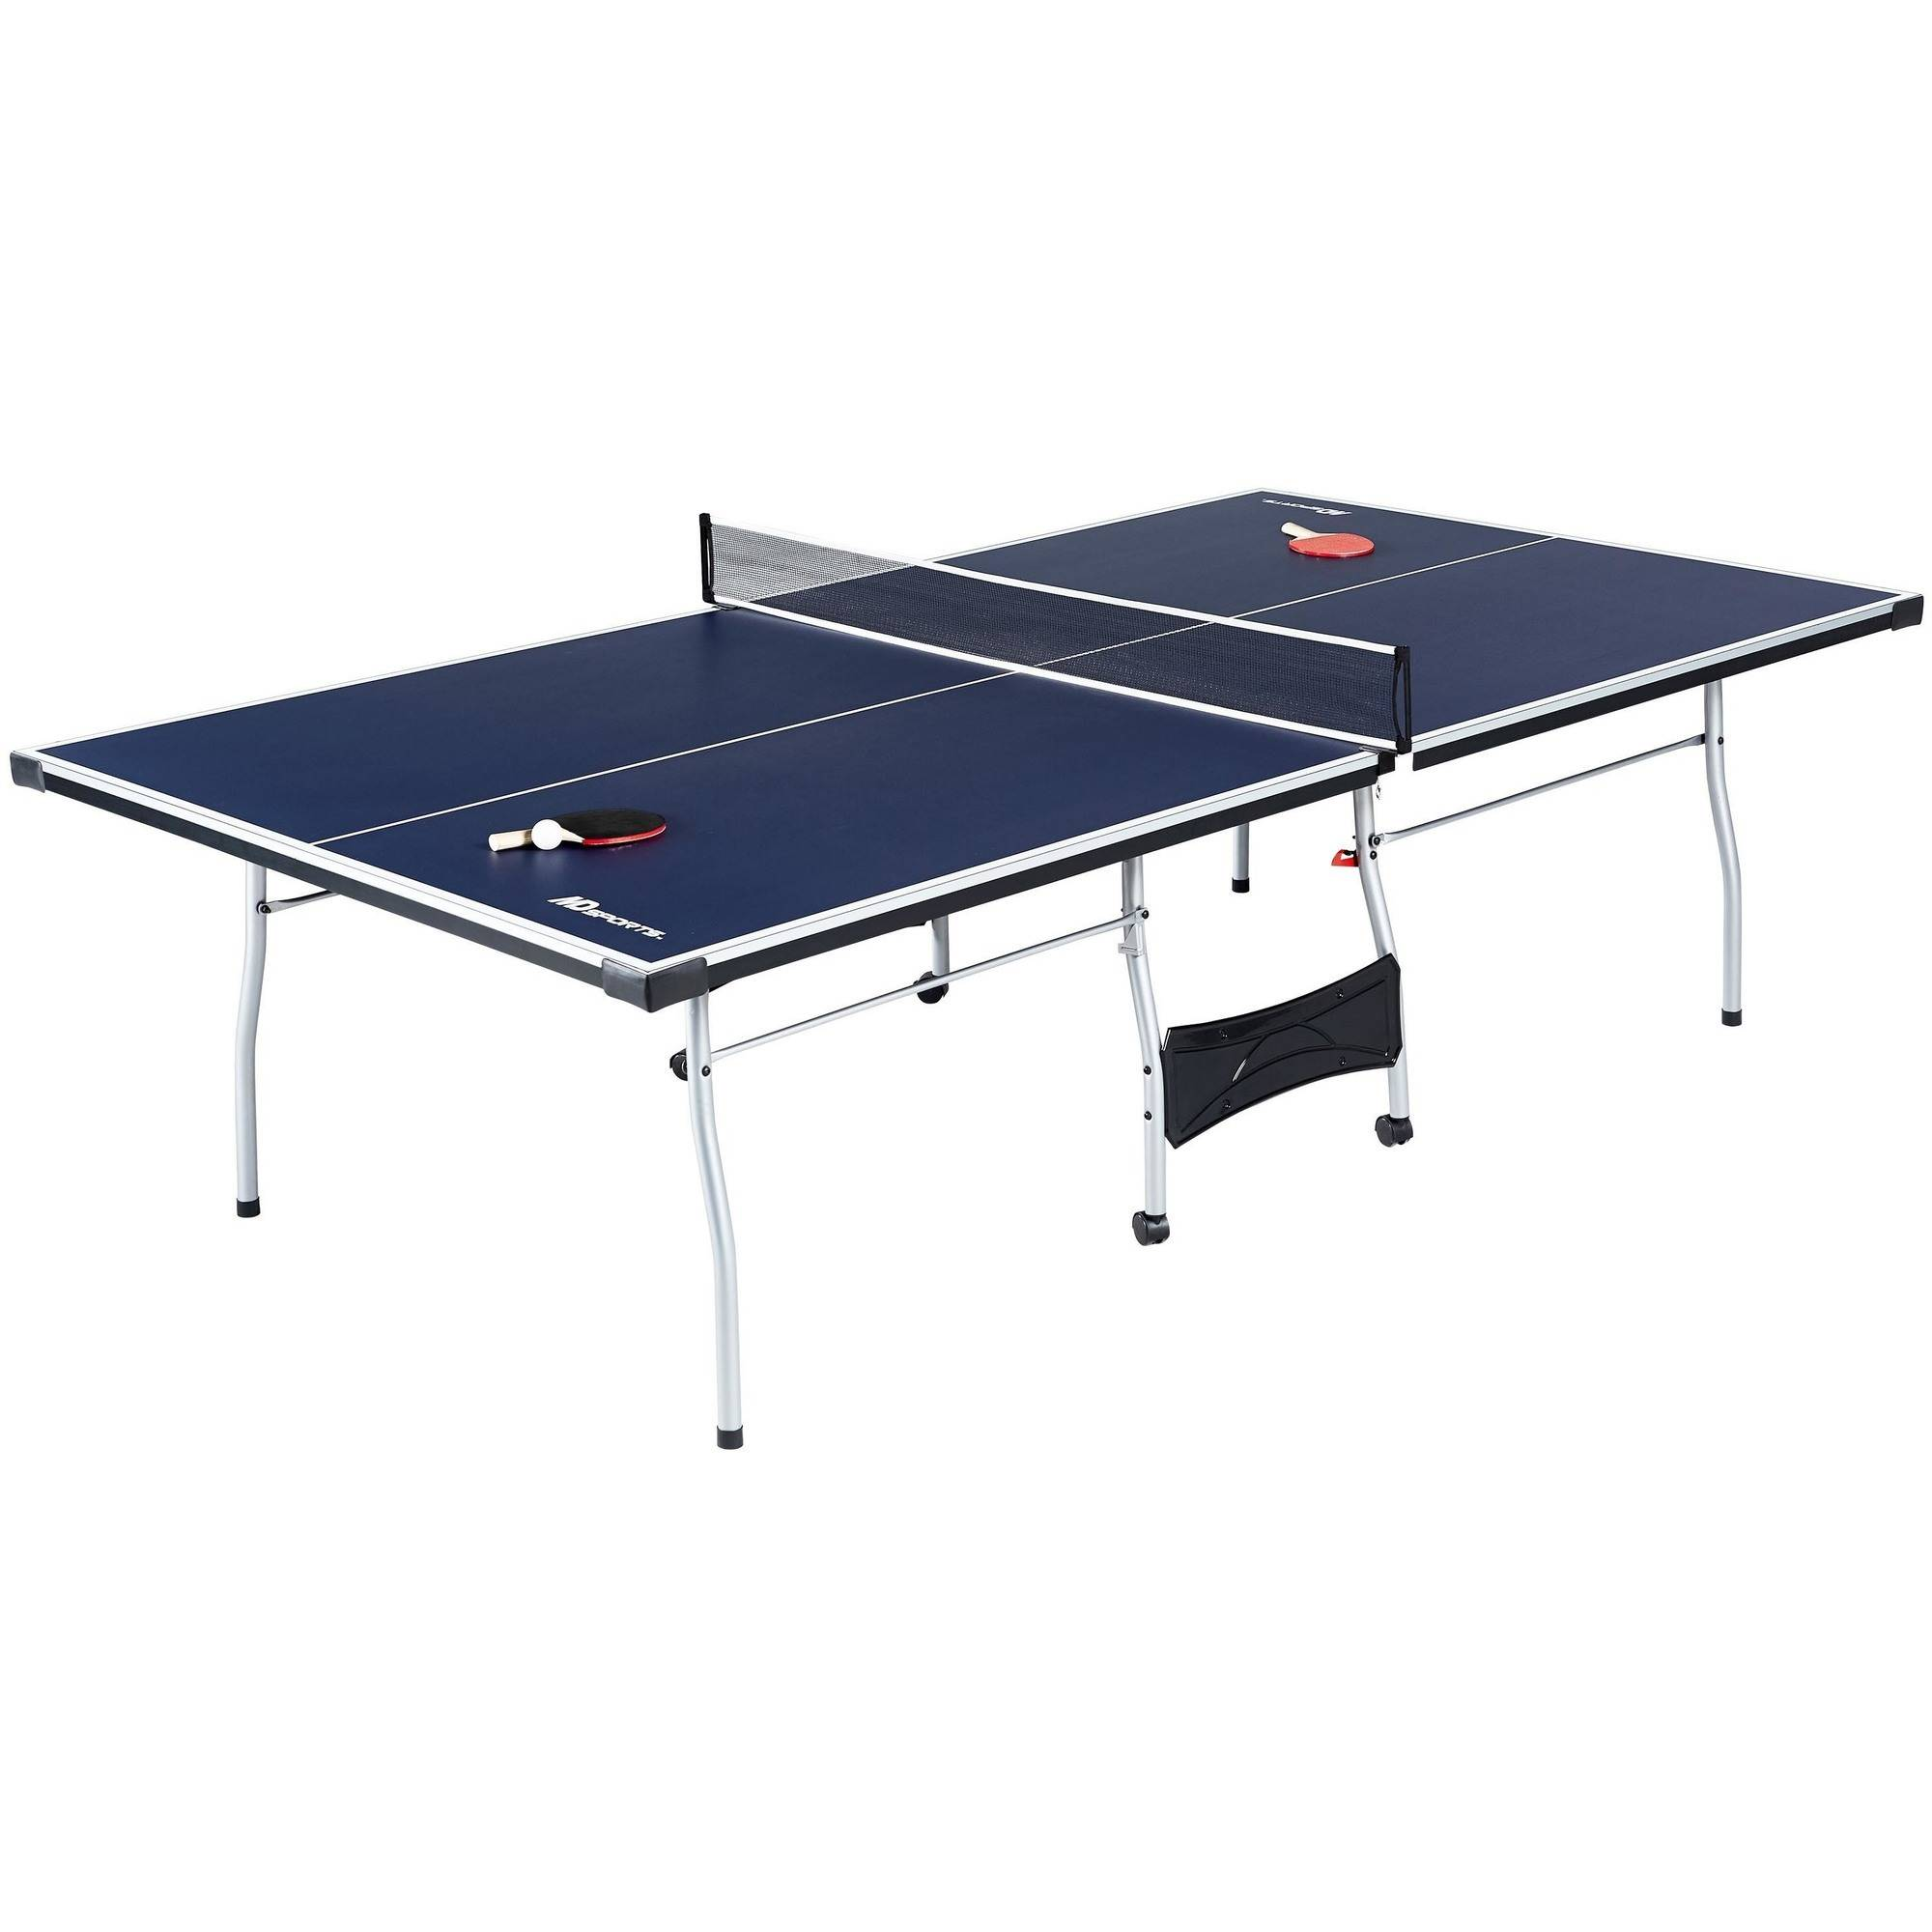 md sports official size table tennis table - walmart